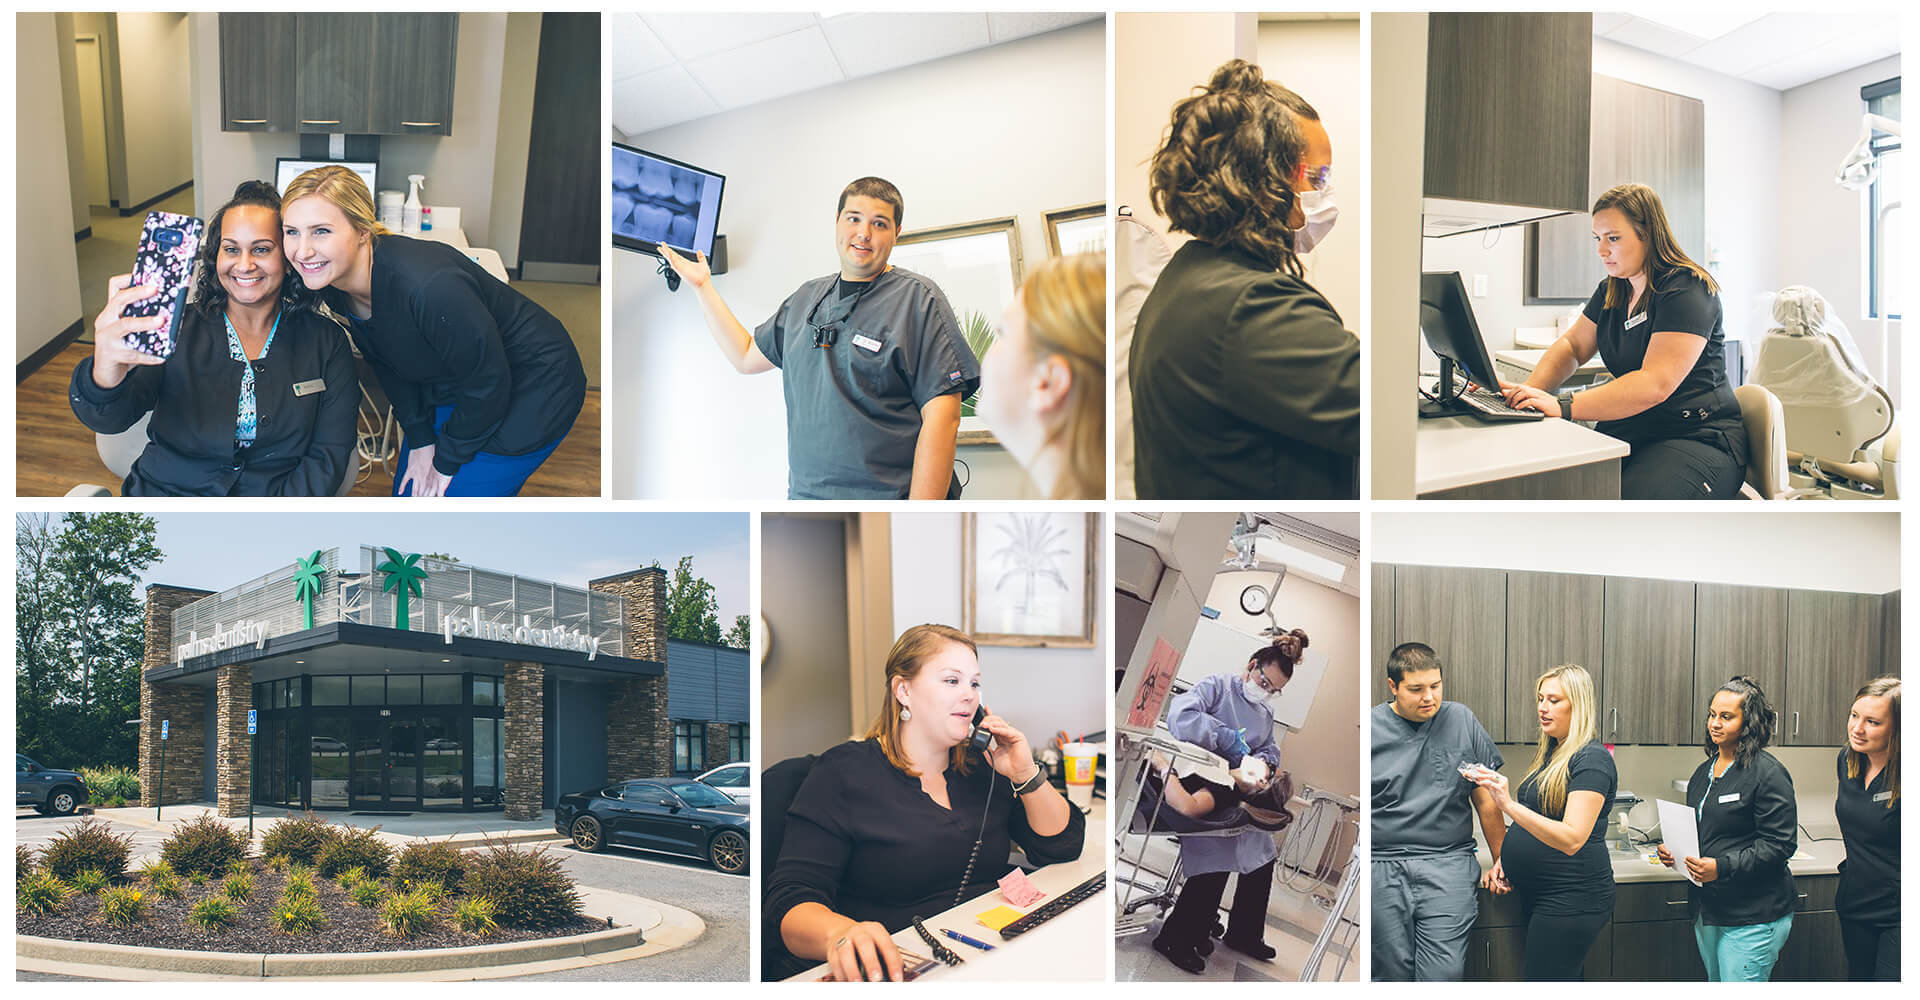 A collage of our entire team of Palms Dentistry specialists working in different office rooms and our building seen from the outside showing the parking lot